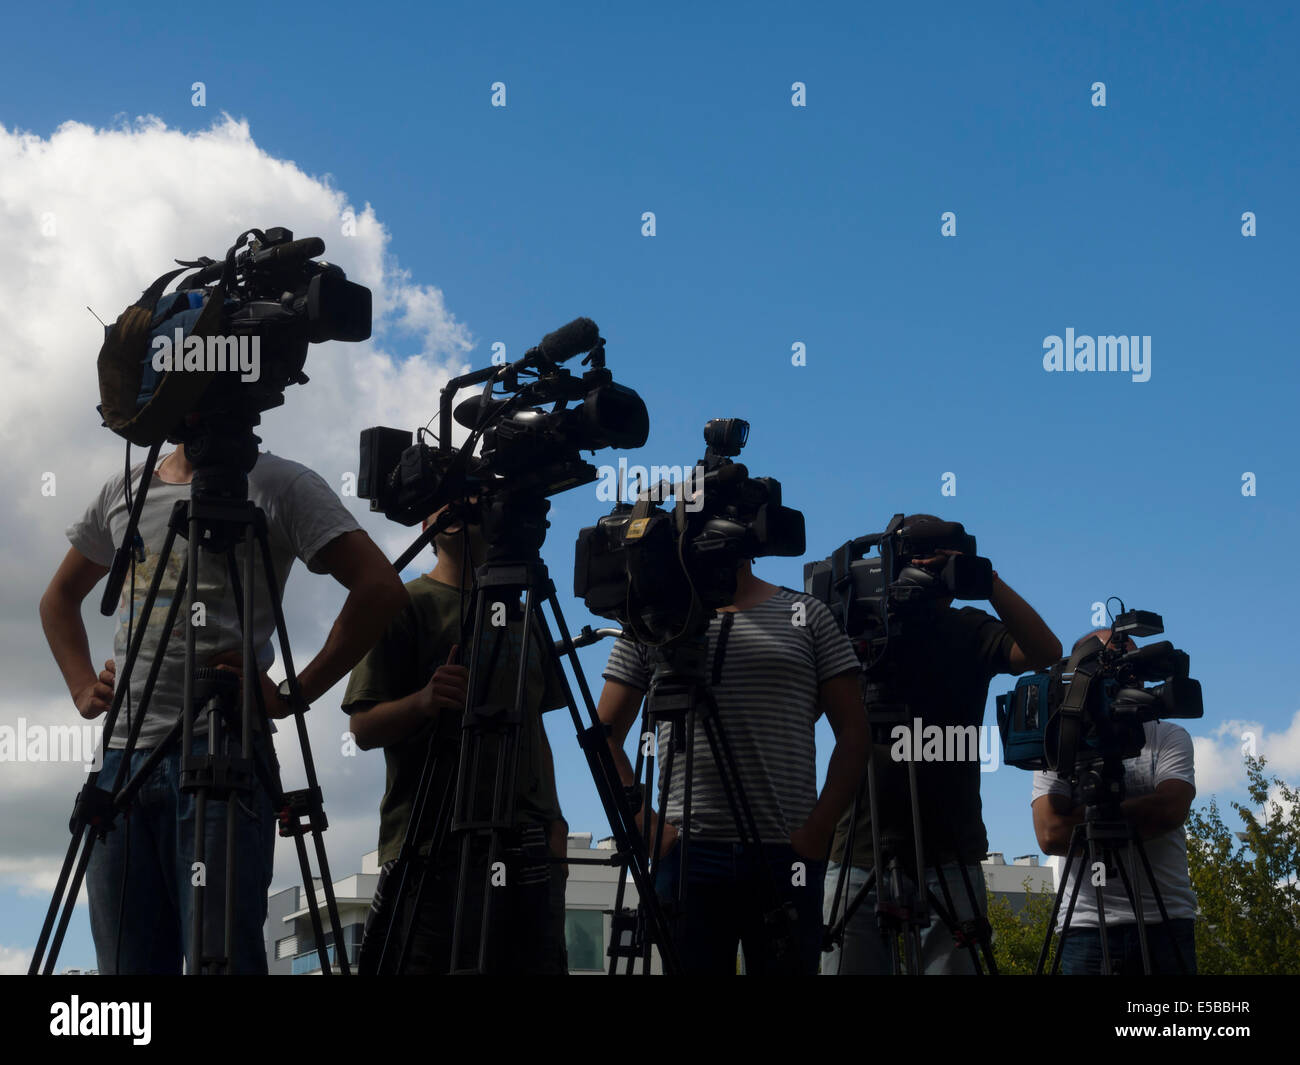 TV News cameramen covering an event - Stock Image